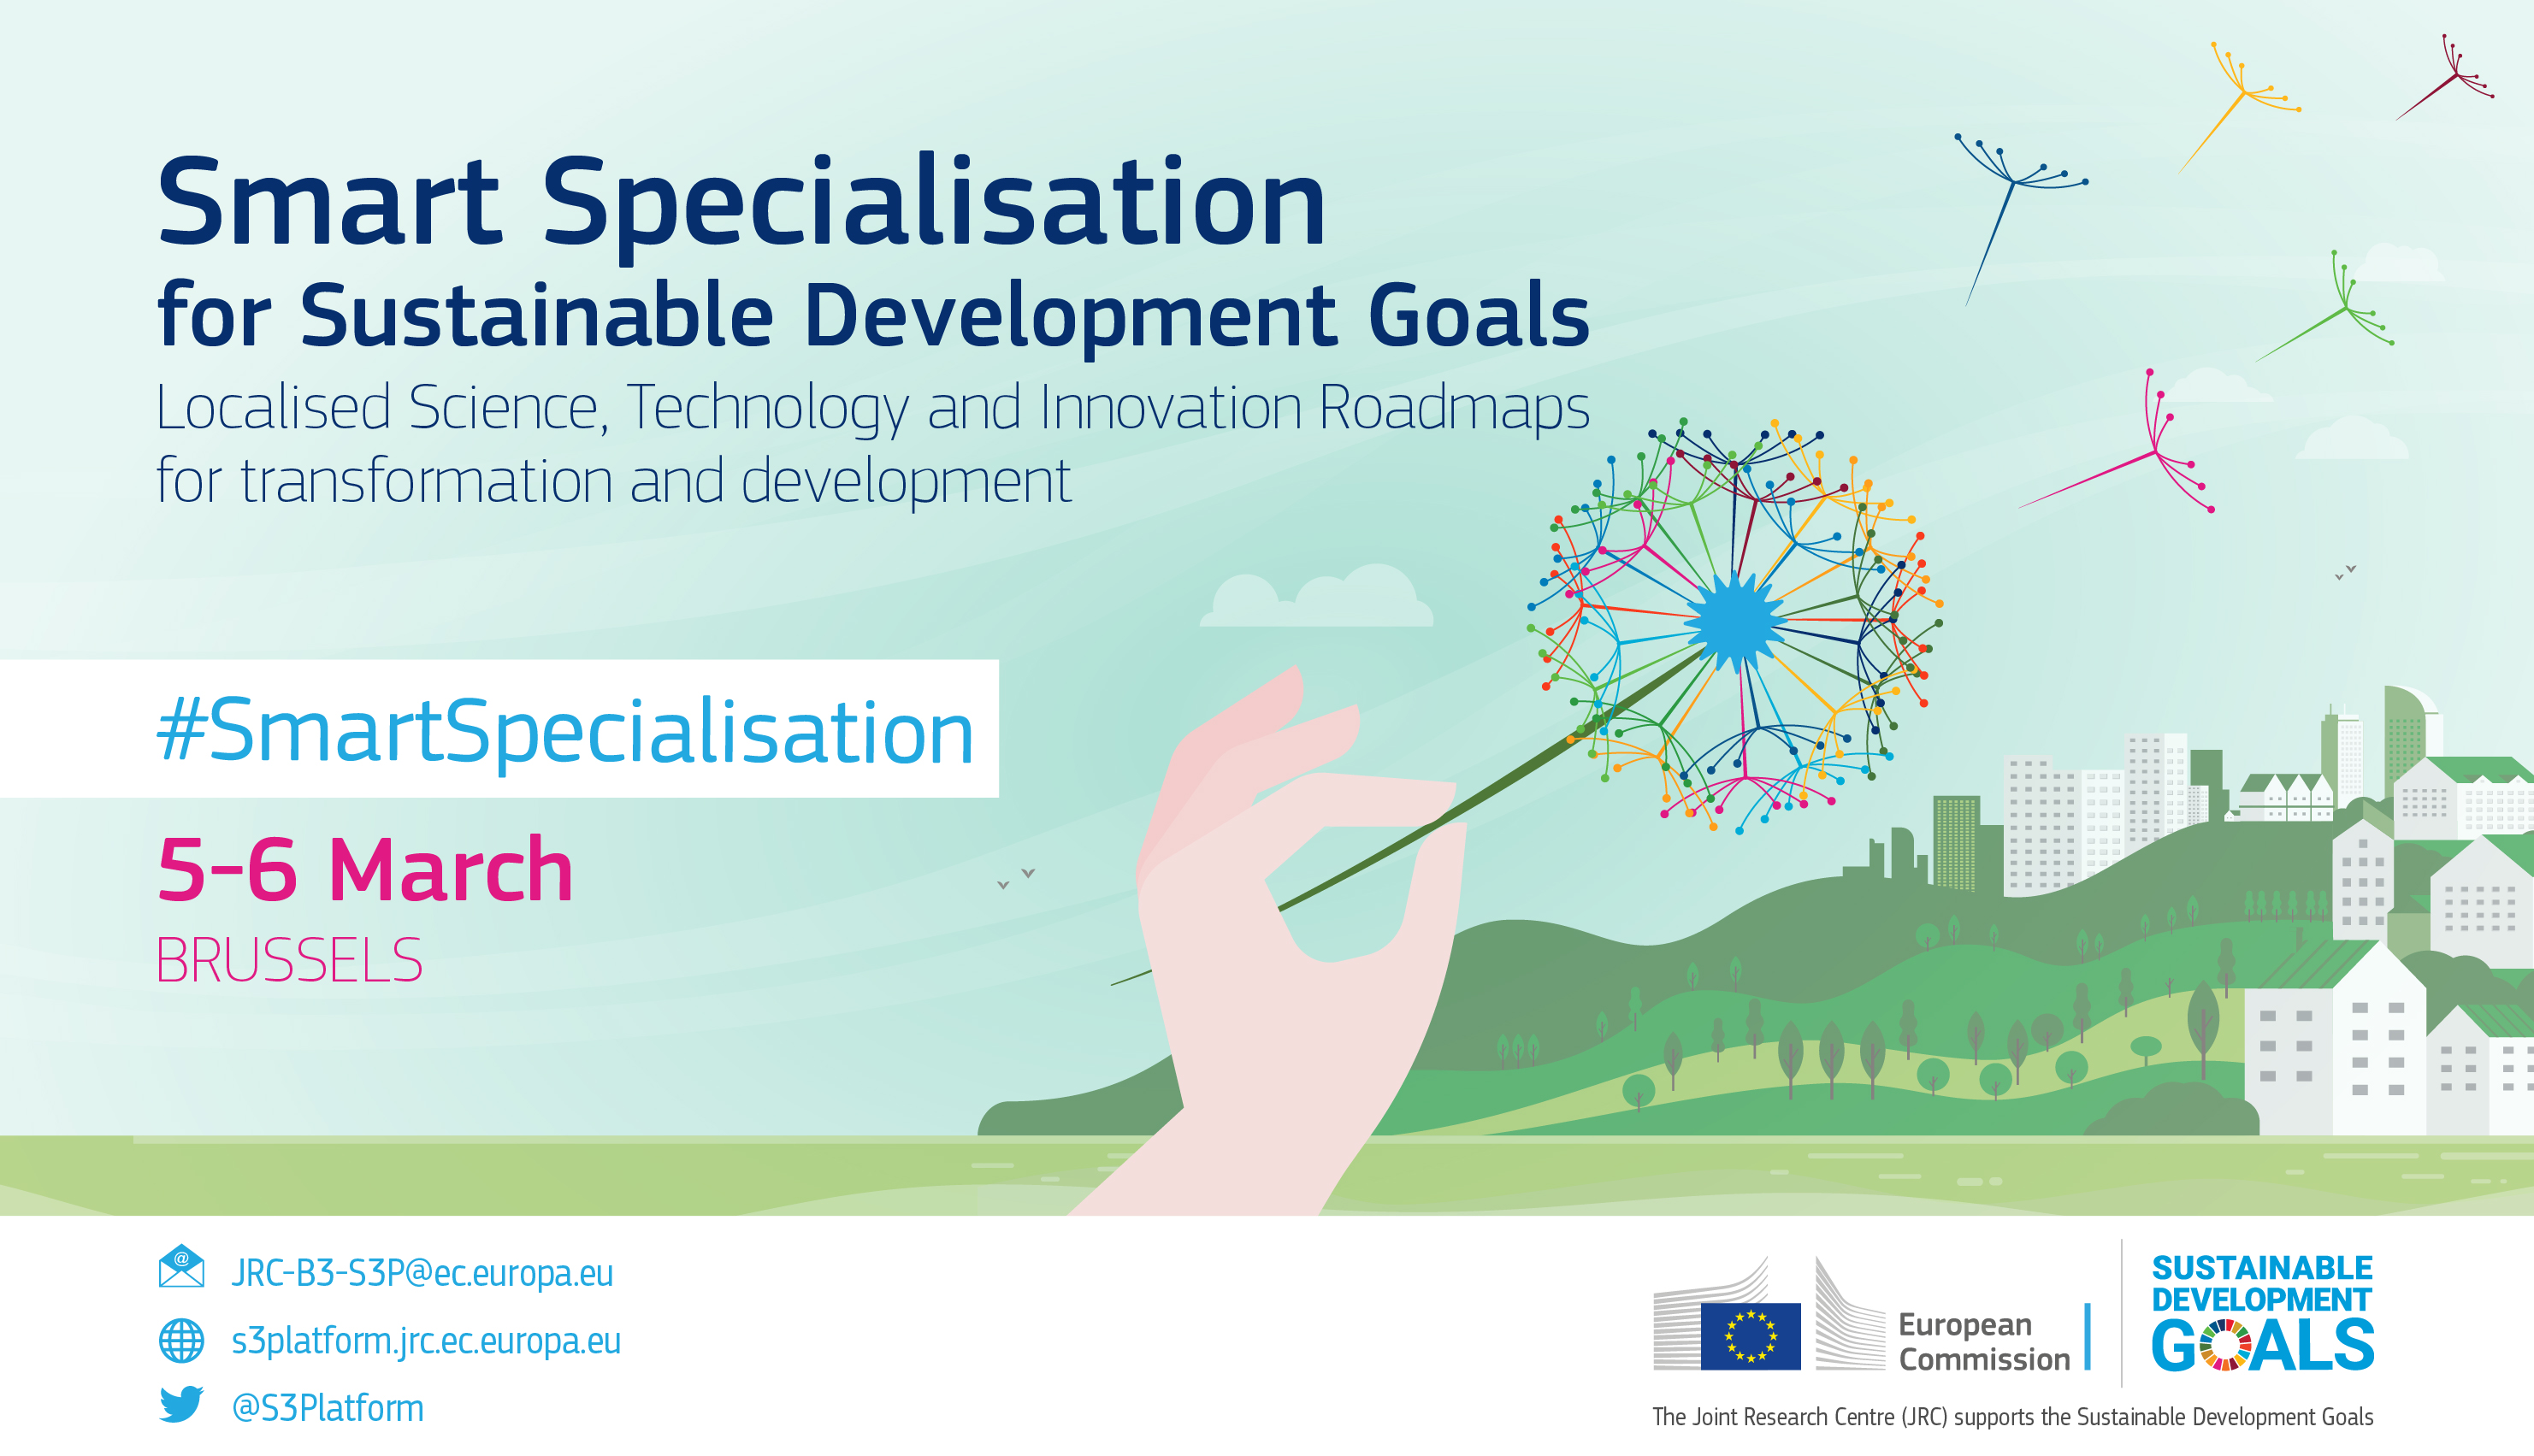 CANCELLED - Smart Specialisation for Sustainable Development Goals